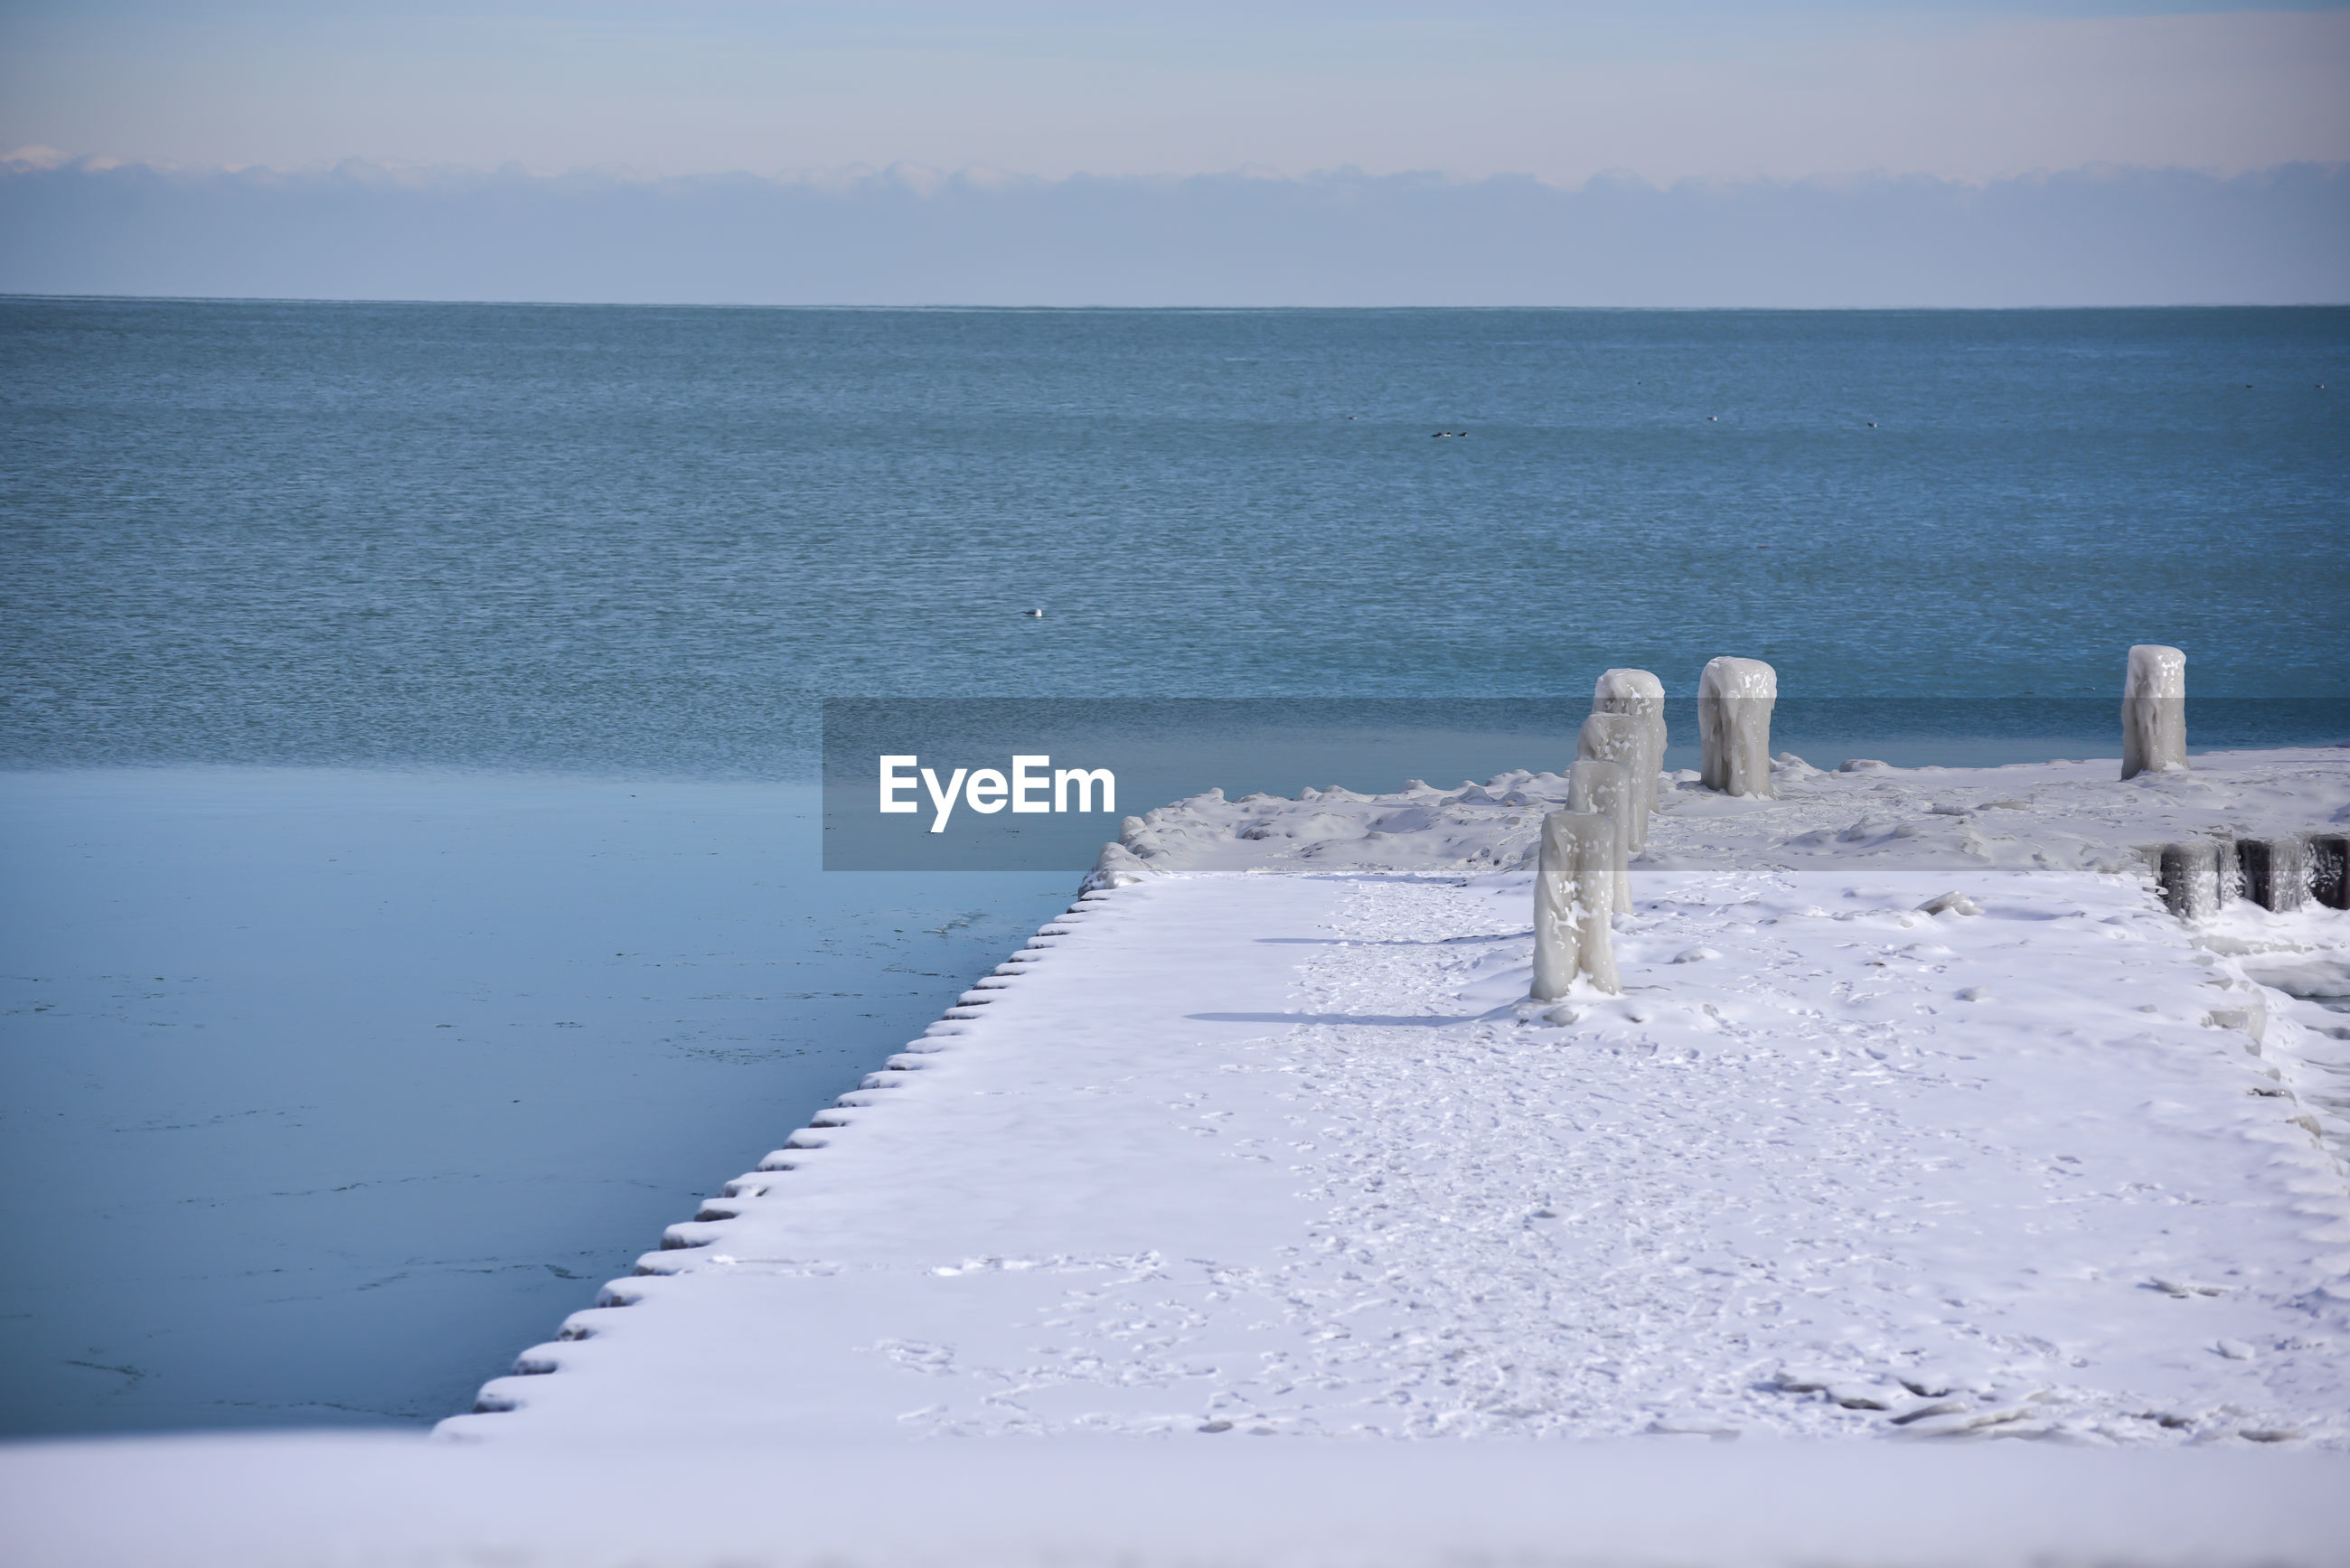 WOODEN POSTS ON FROZEN SEA AGAINST SKY DURING WINTER